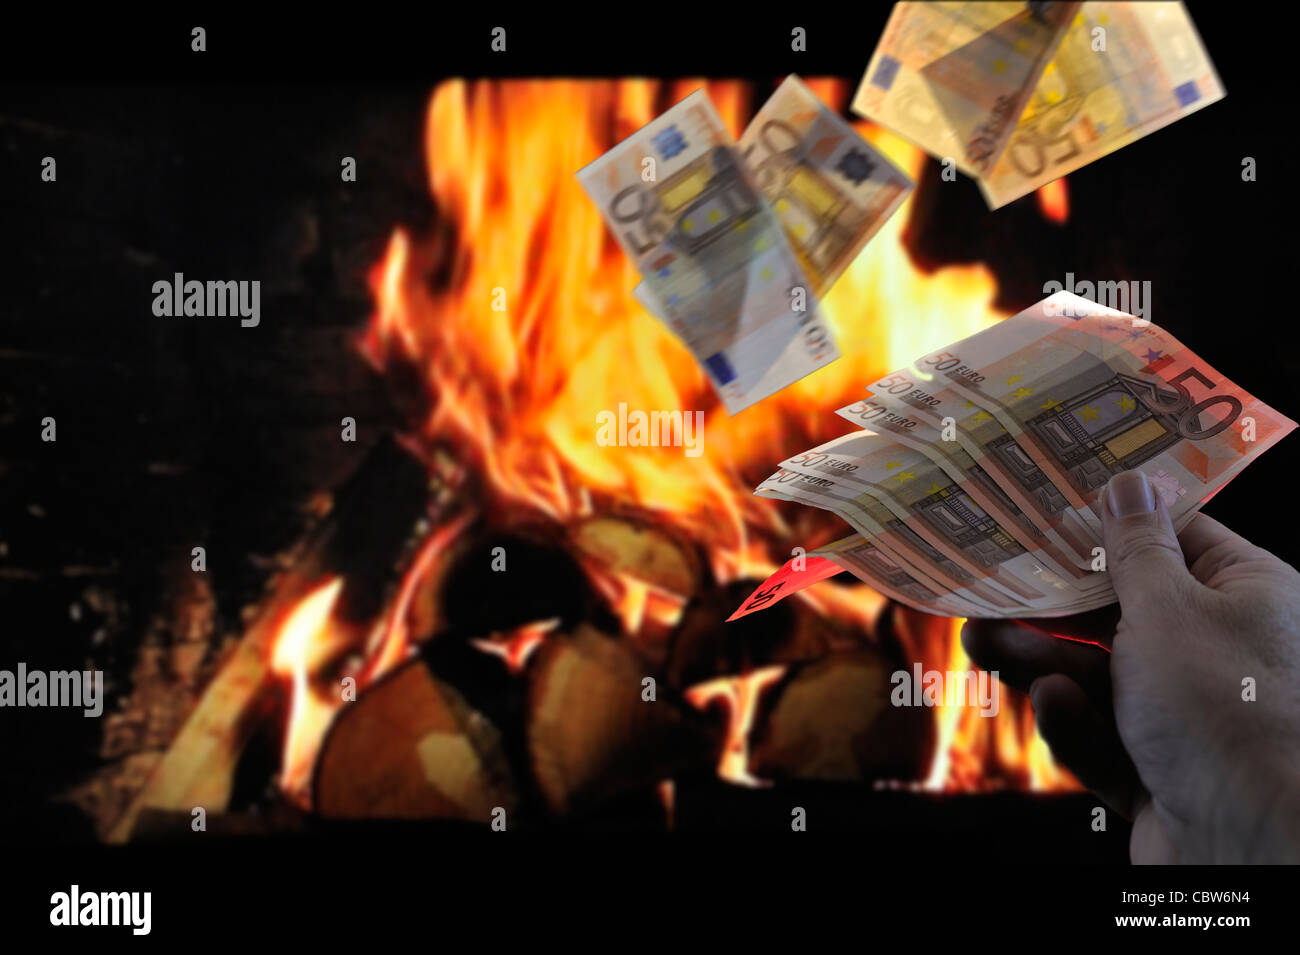 Burning European money by throwing euro bank notes in flames of fireplace to symbolize recession and crisis in the - Stock Image